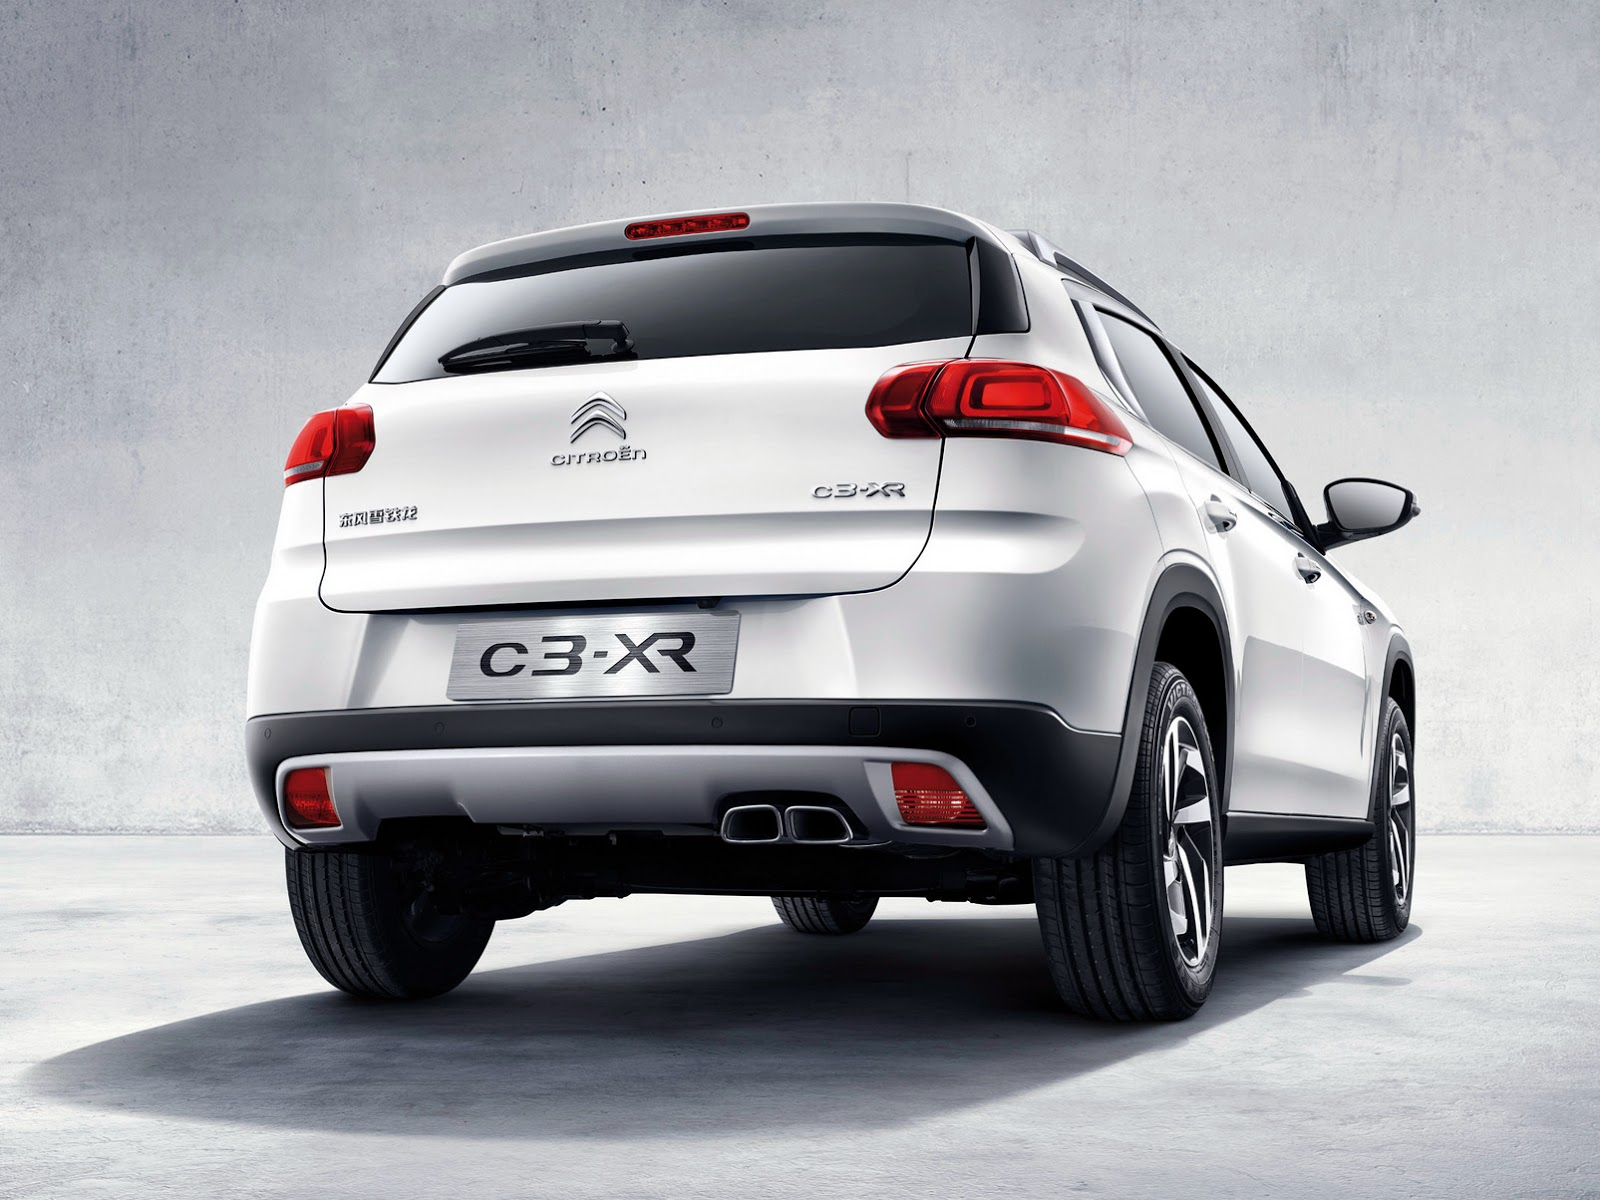 new citroen c3 xr small suv wears its production outfit. Black Bedroom Furniture Sets. Home Design Ideas